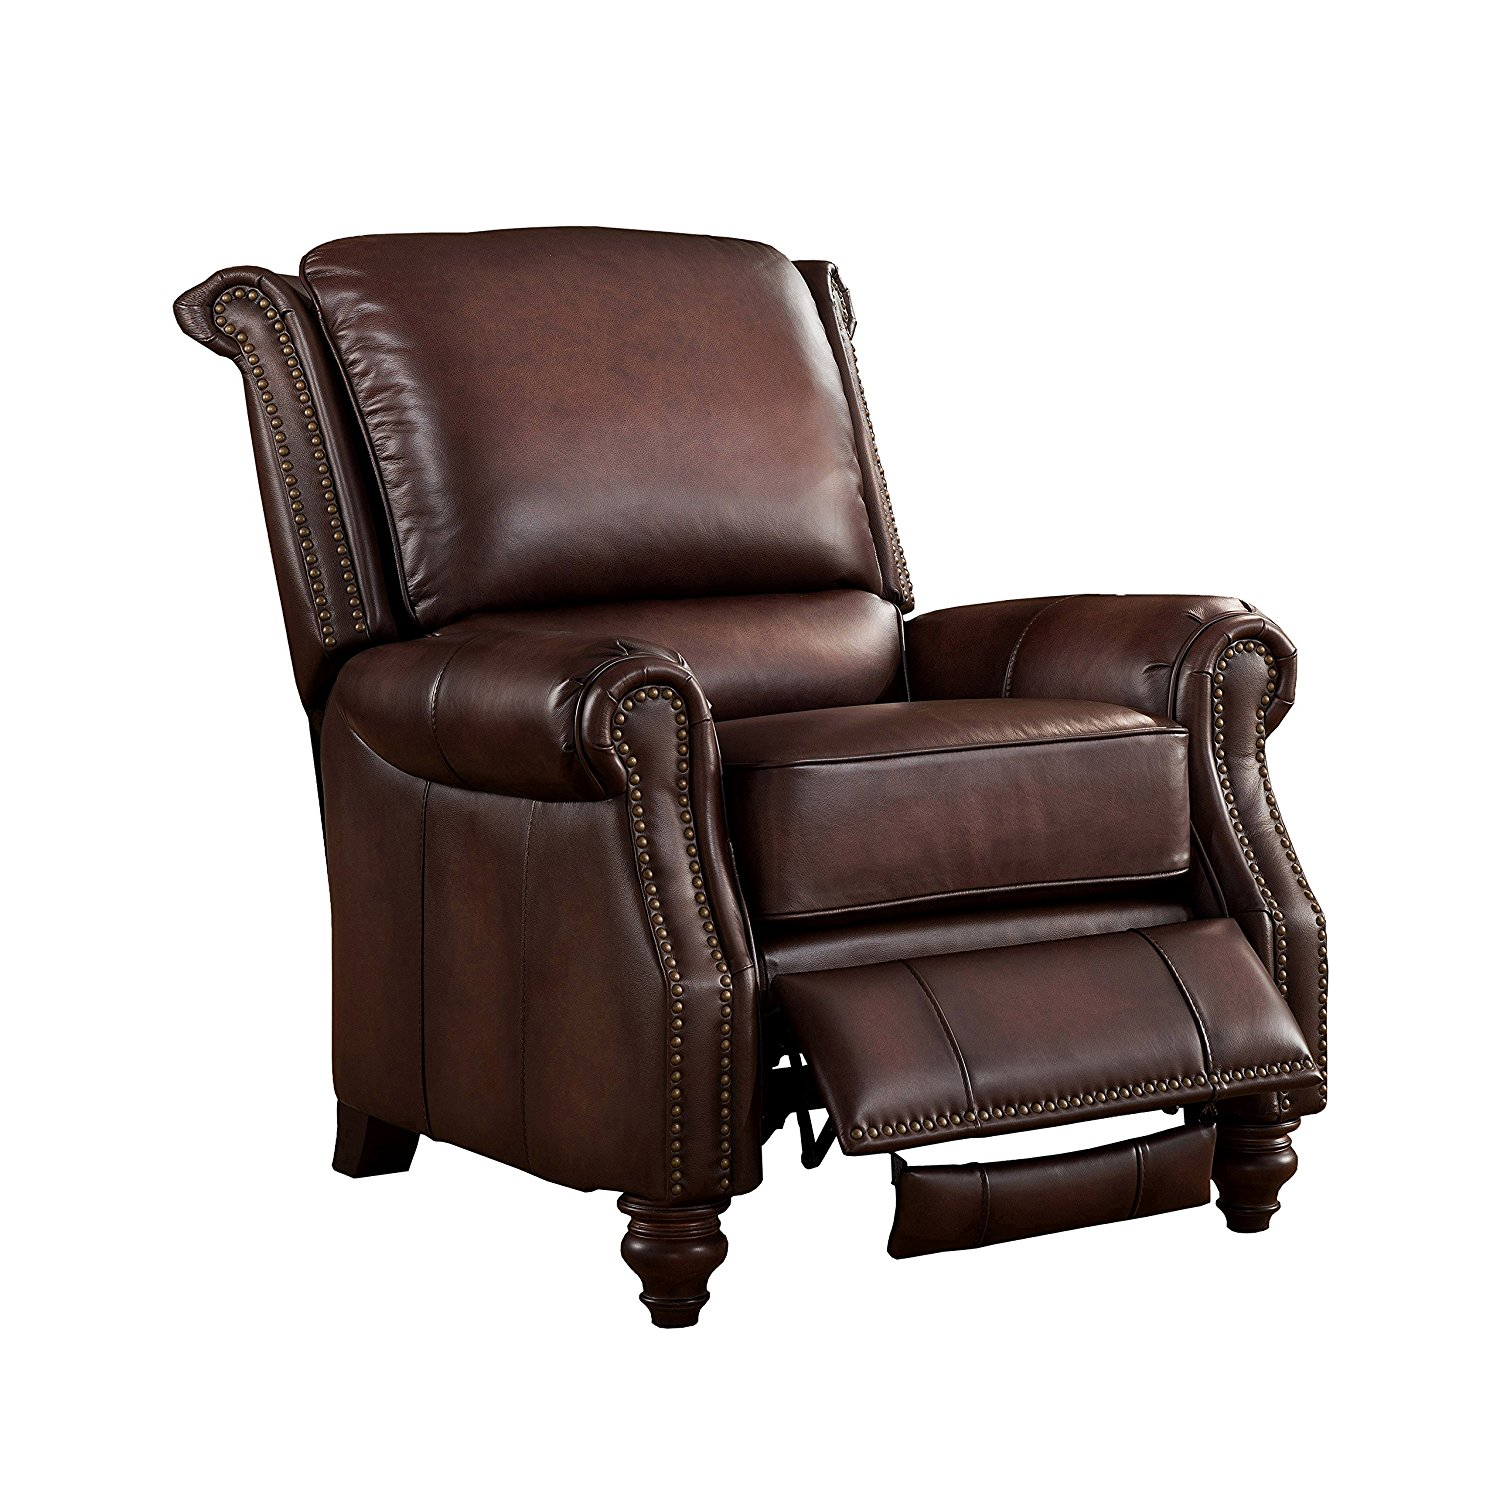 Amax Leather Churchill 100% Leather Recliner, Brown